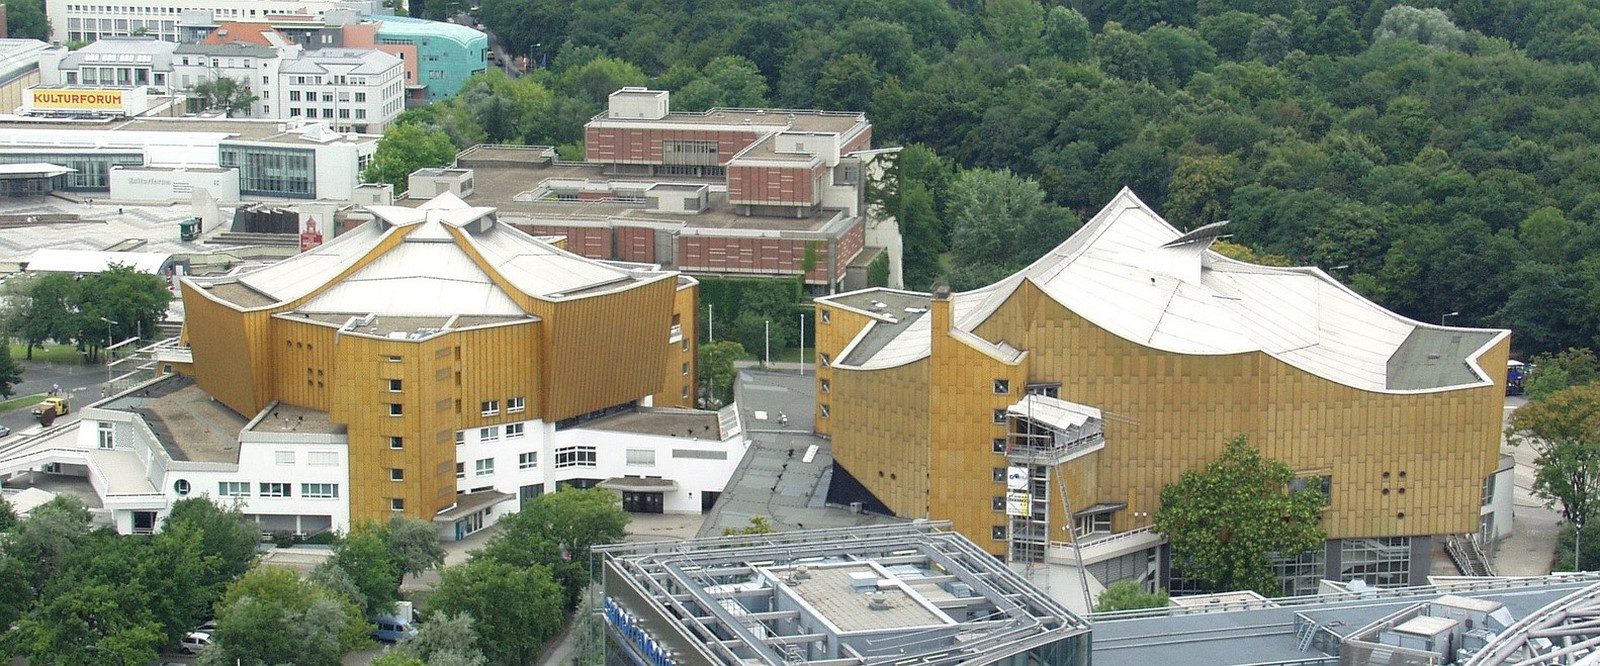 Berlin Philharmonic by Hans Scharoun: Built to replace the old Philharmonie - Sheet1